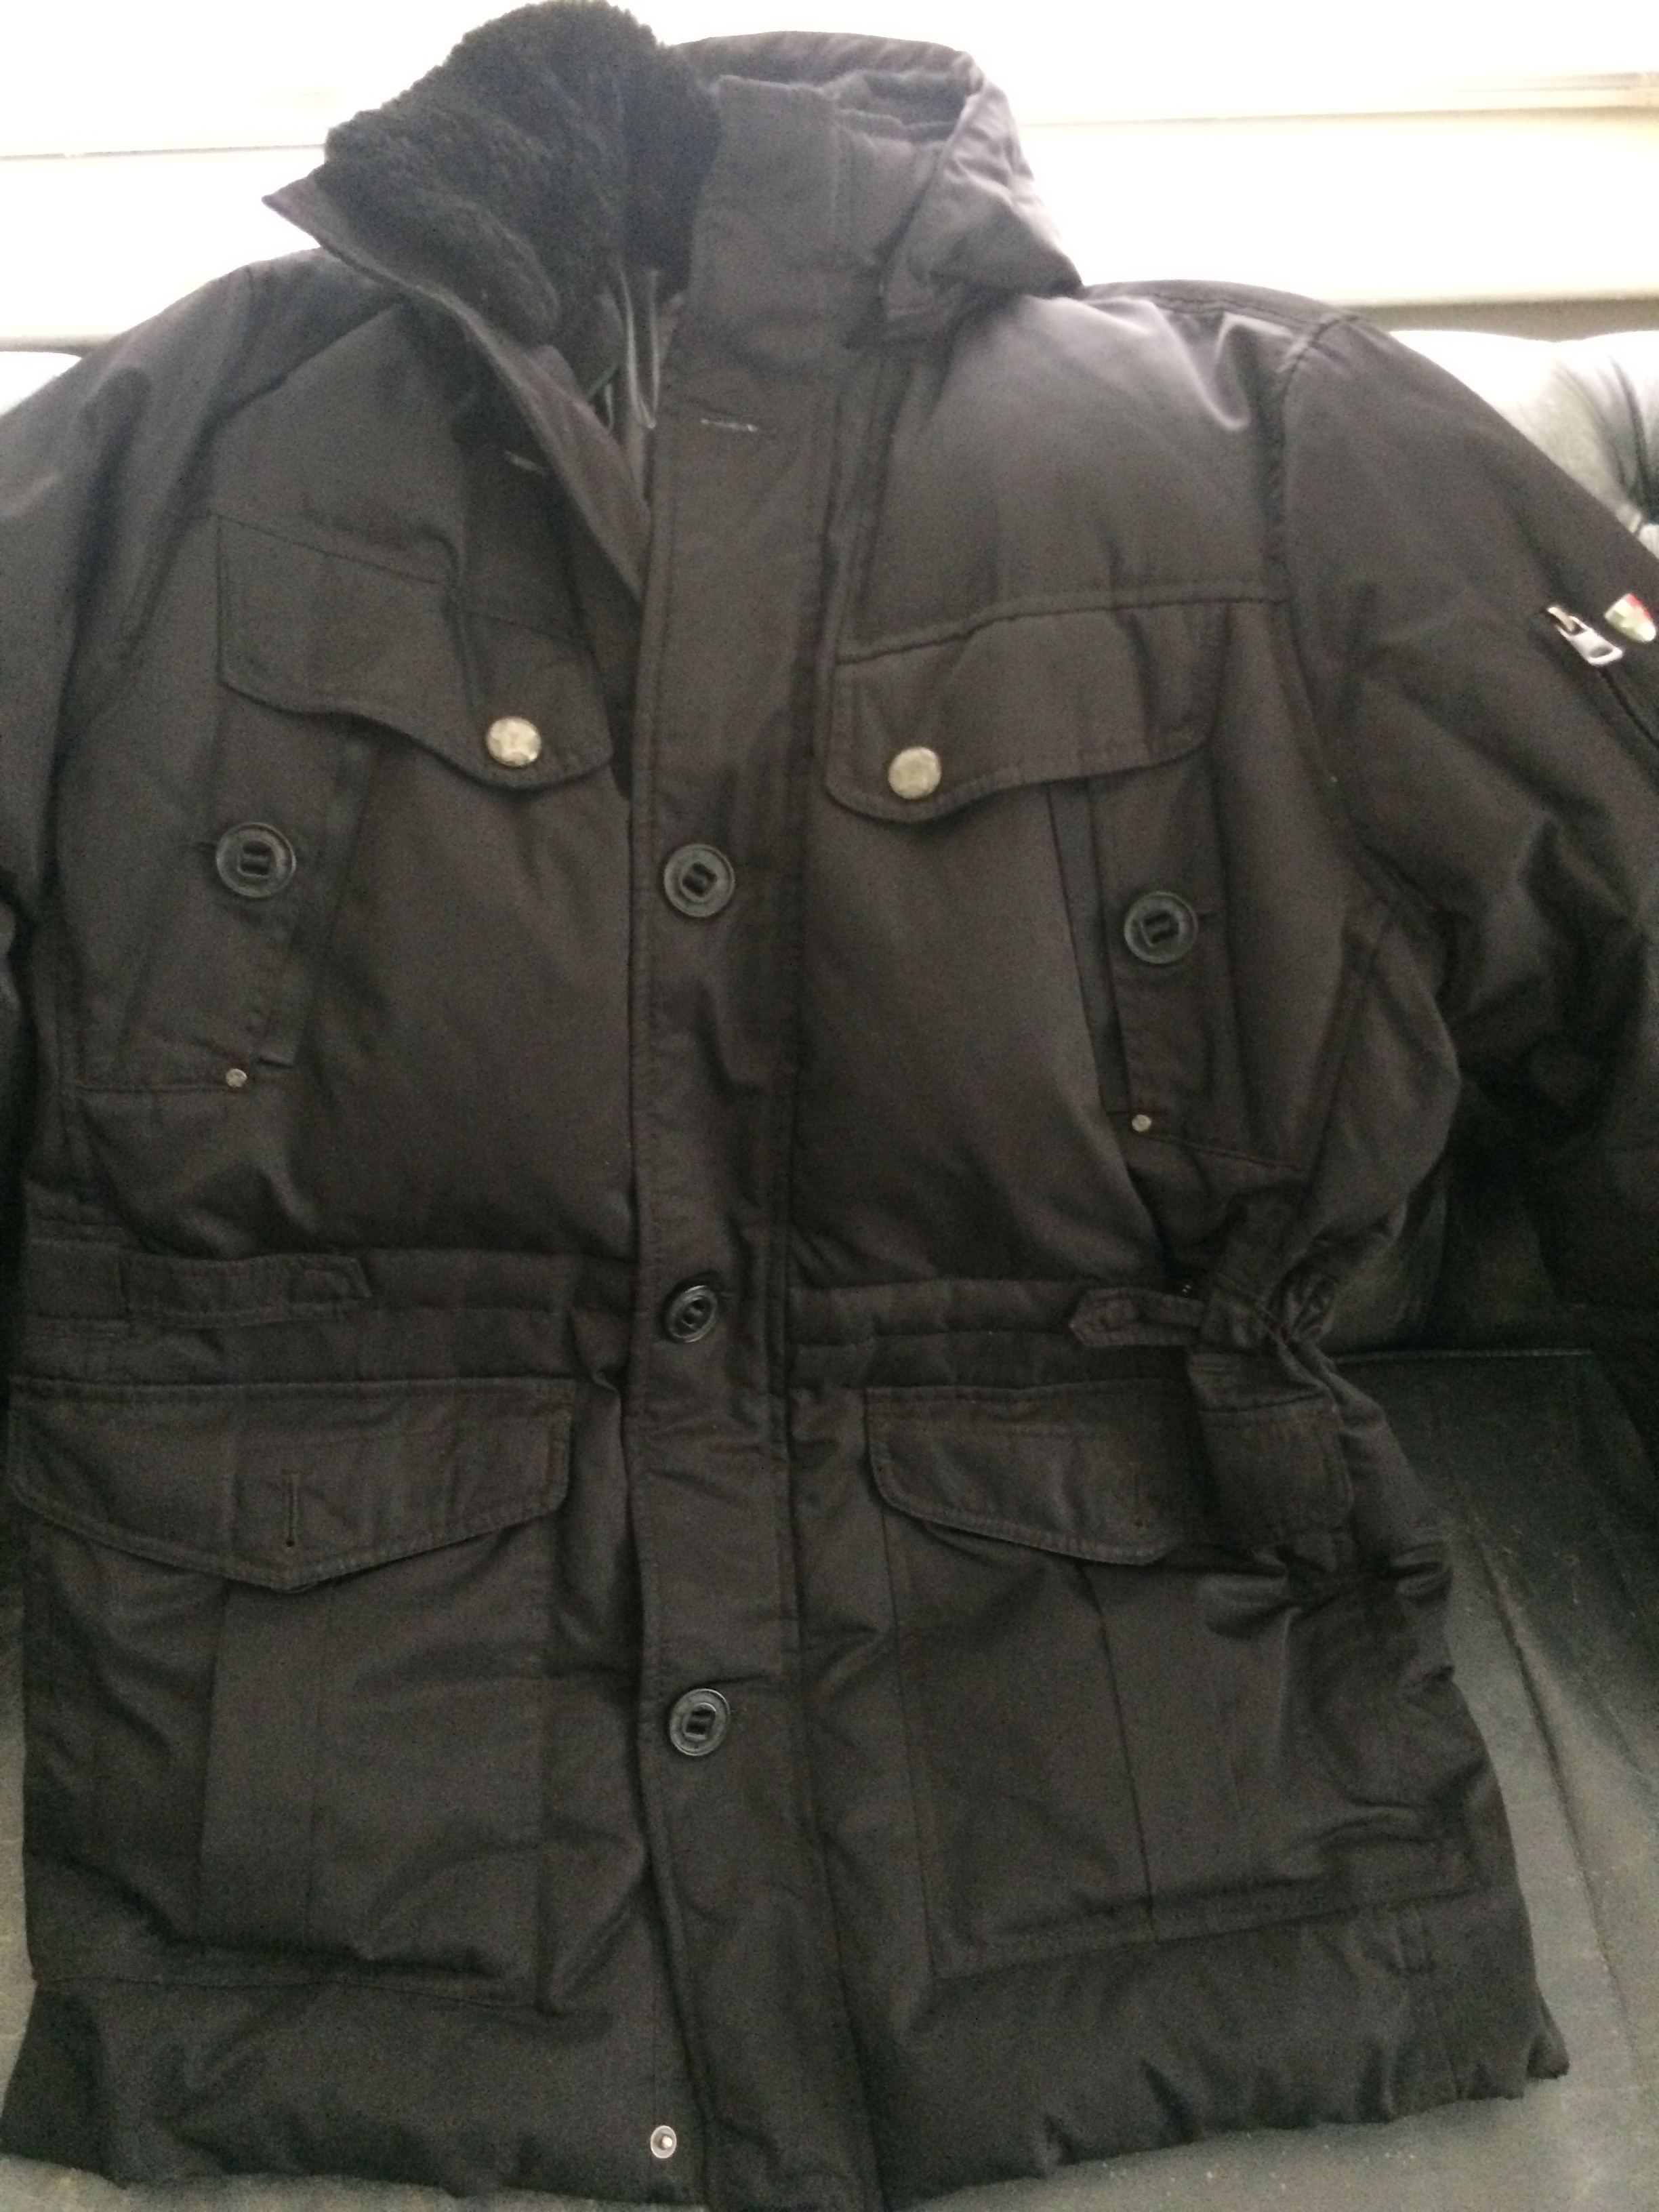 Fortezza winter coat